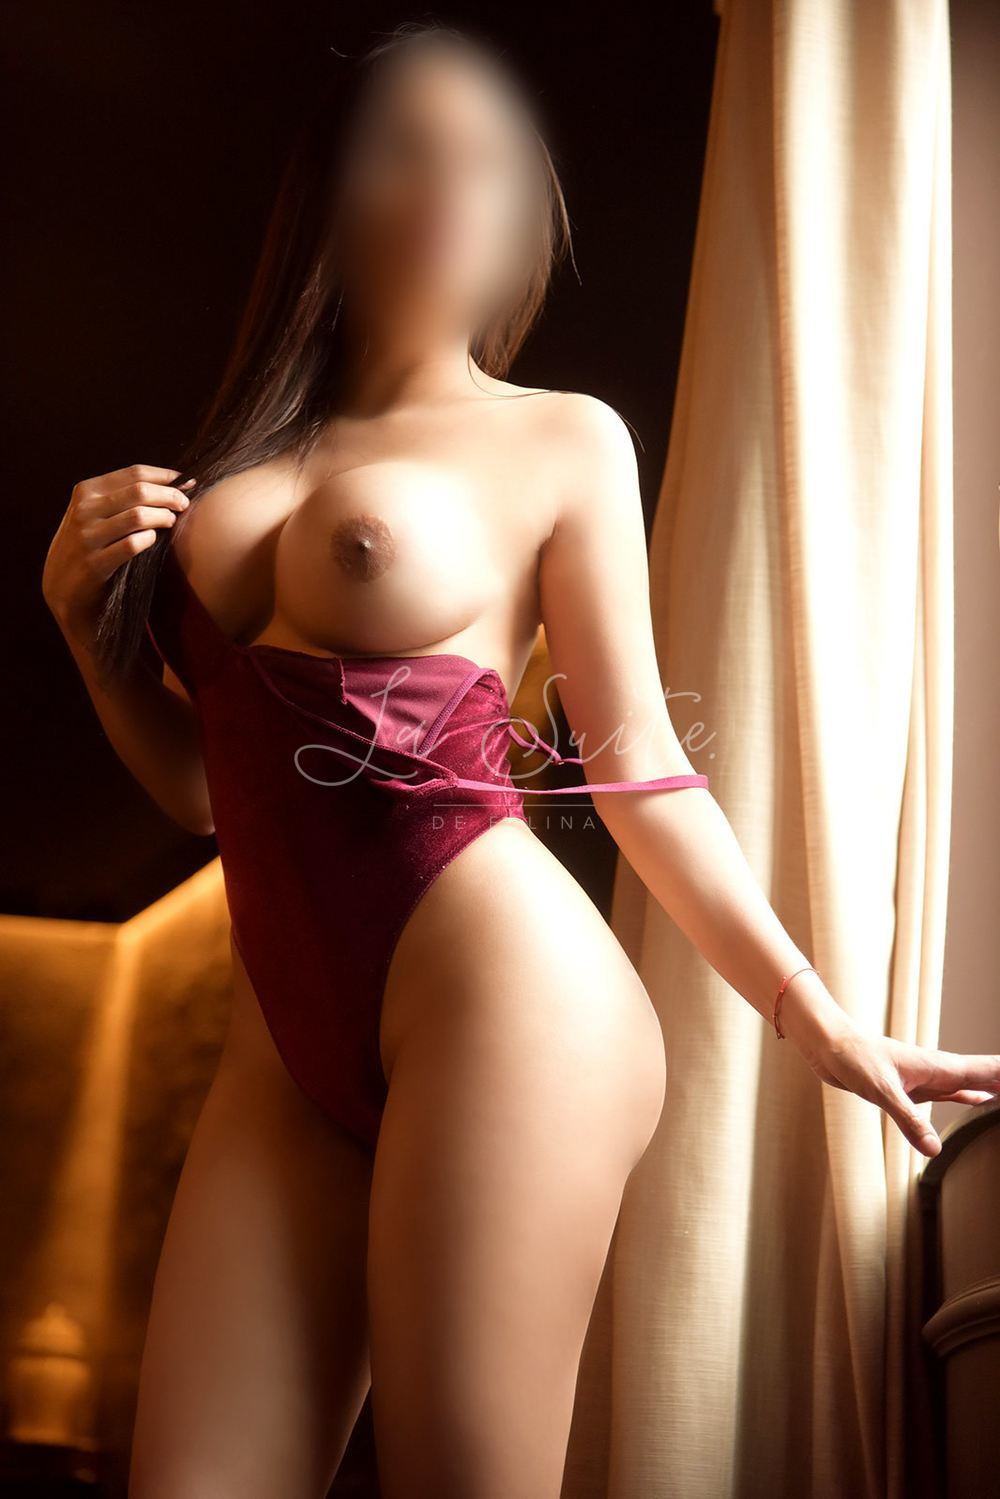 Isabella: Luxury Latina escort for fetish sex in Barcelona, wearing a red body